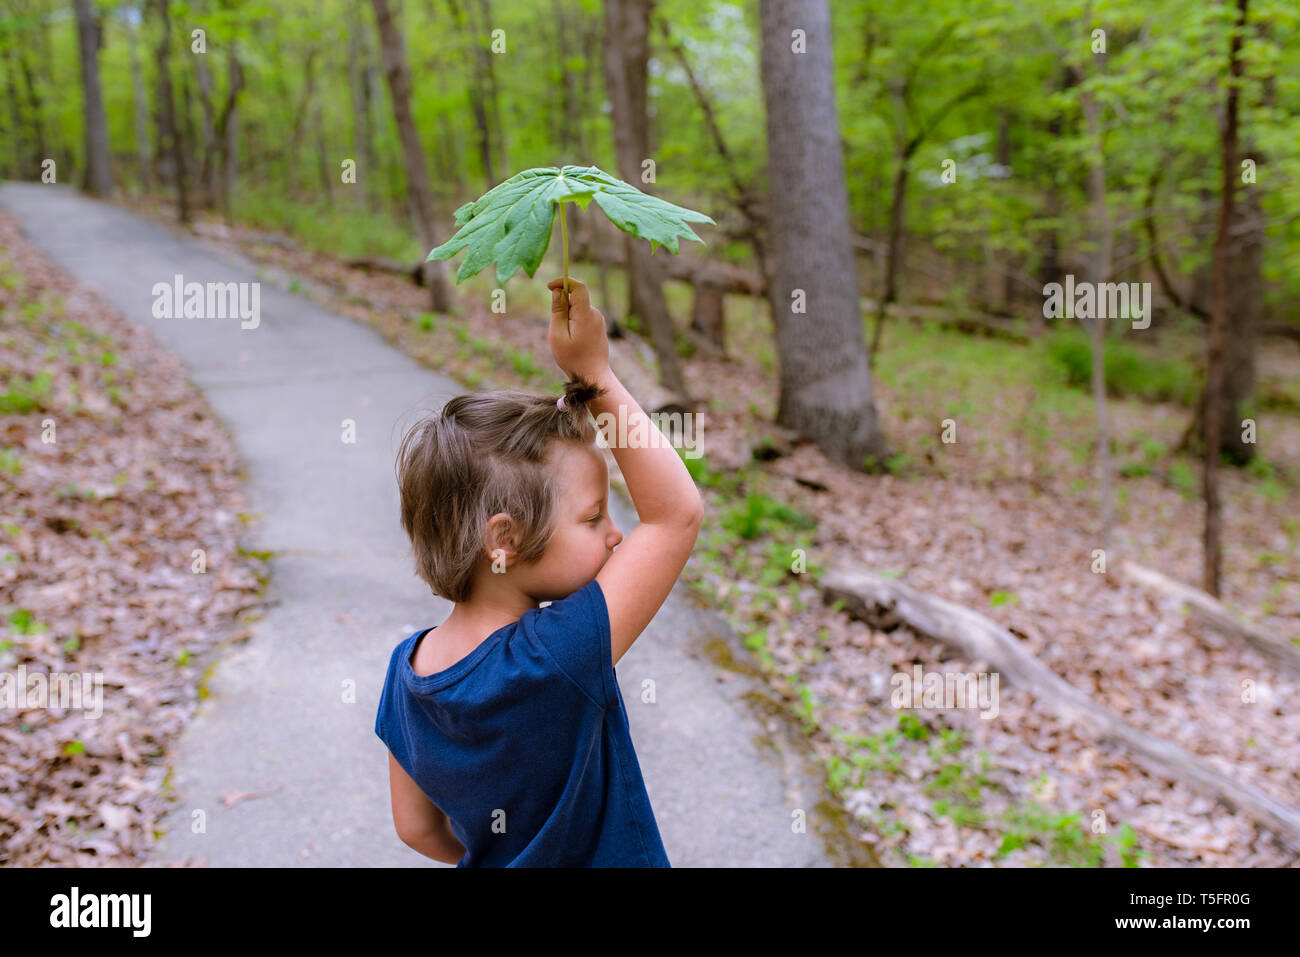 Young girl holding a big leaf in the forest - Stock Image